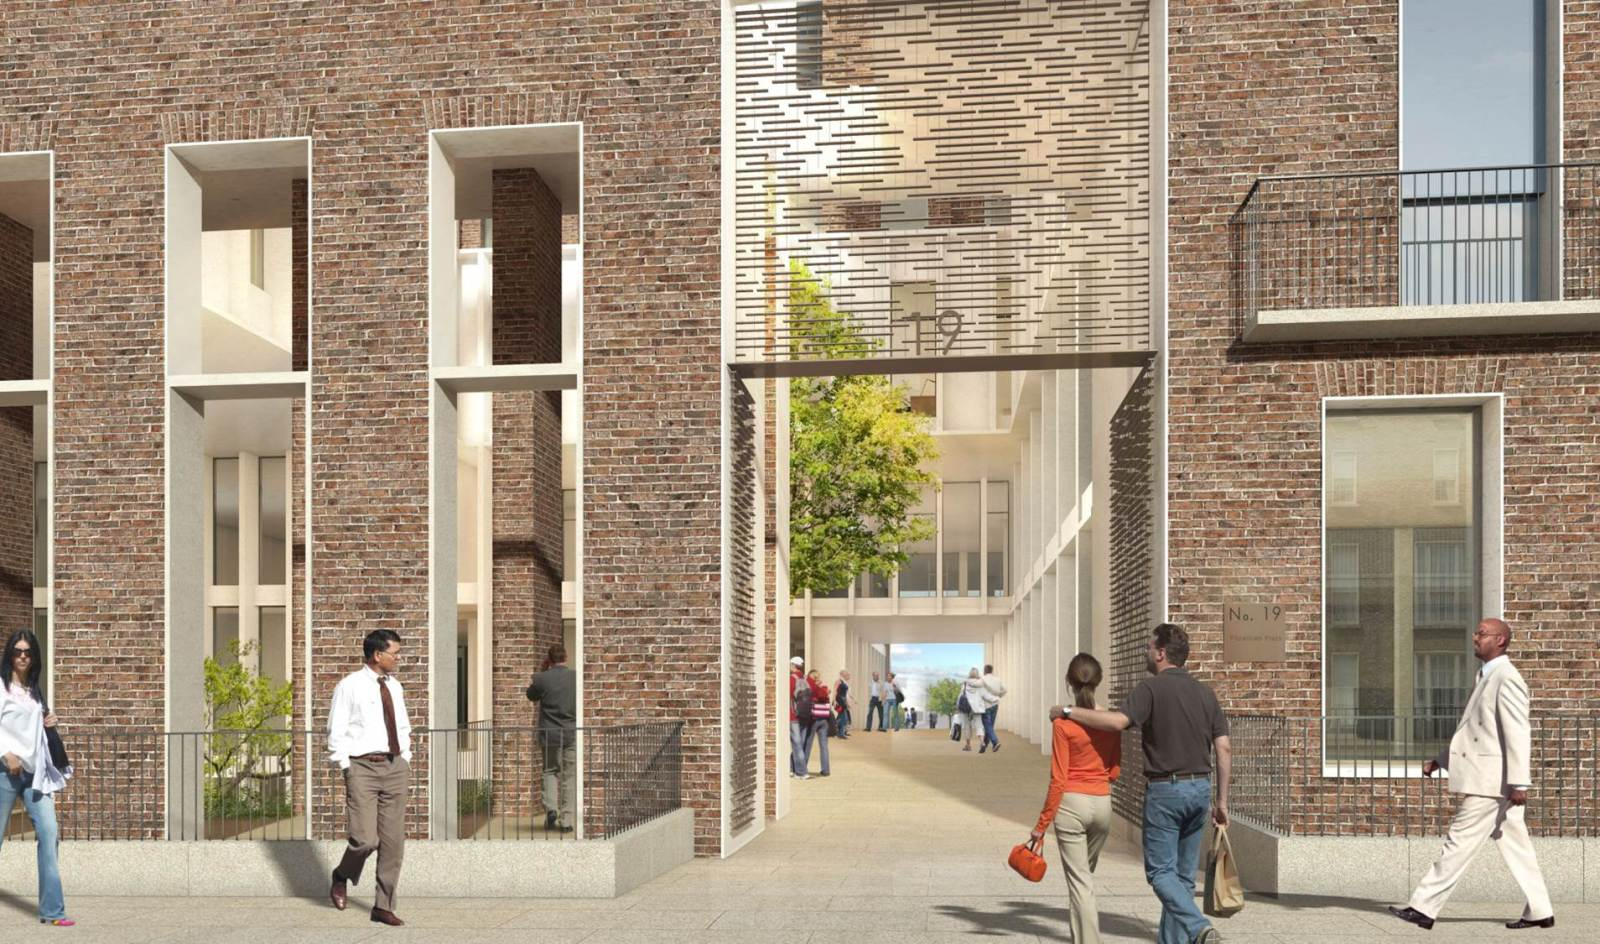 rendering of a courtyard access in a red brick facade